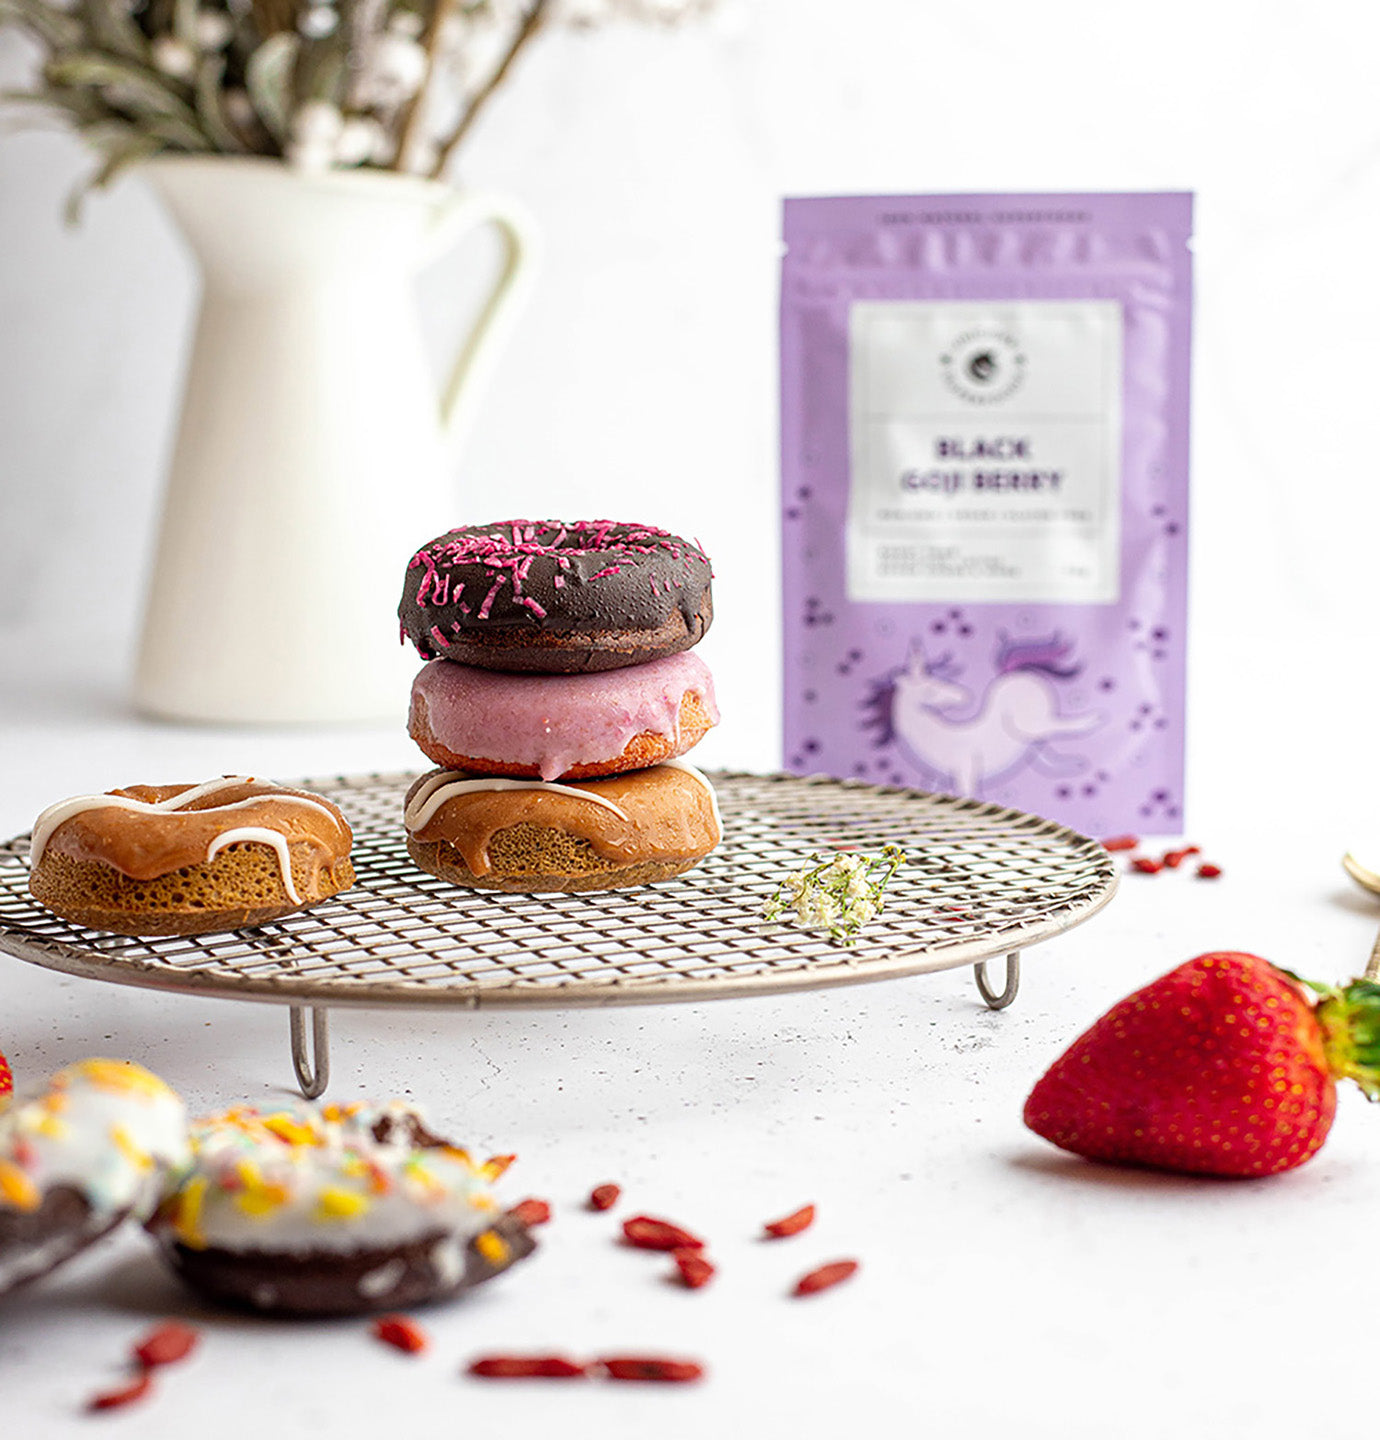 black goji berry donuts